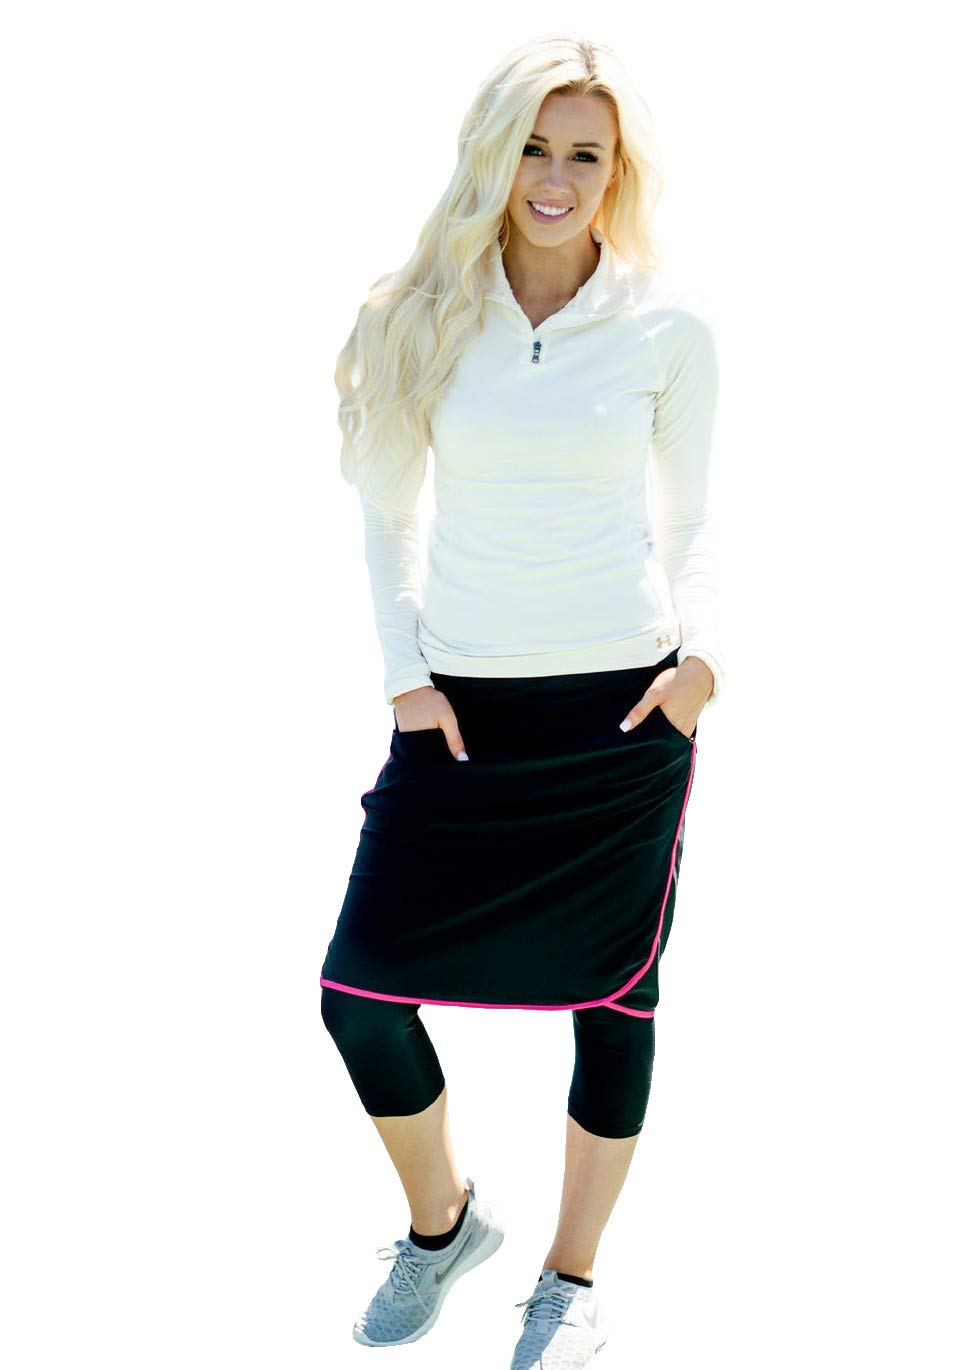 Ella Mae Sports Skirt for Women: Knee-Length Workout Skirt w/Attached Leggings Pink